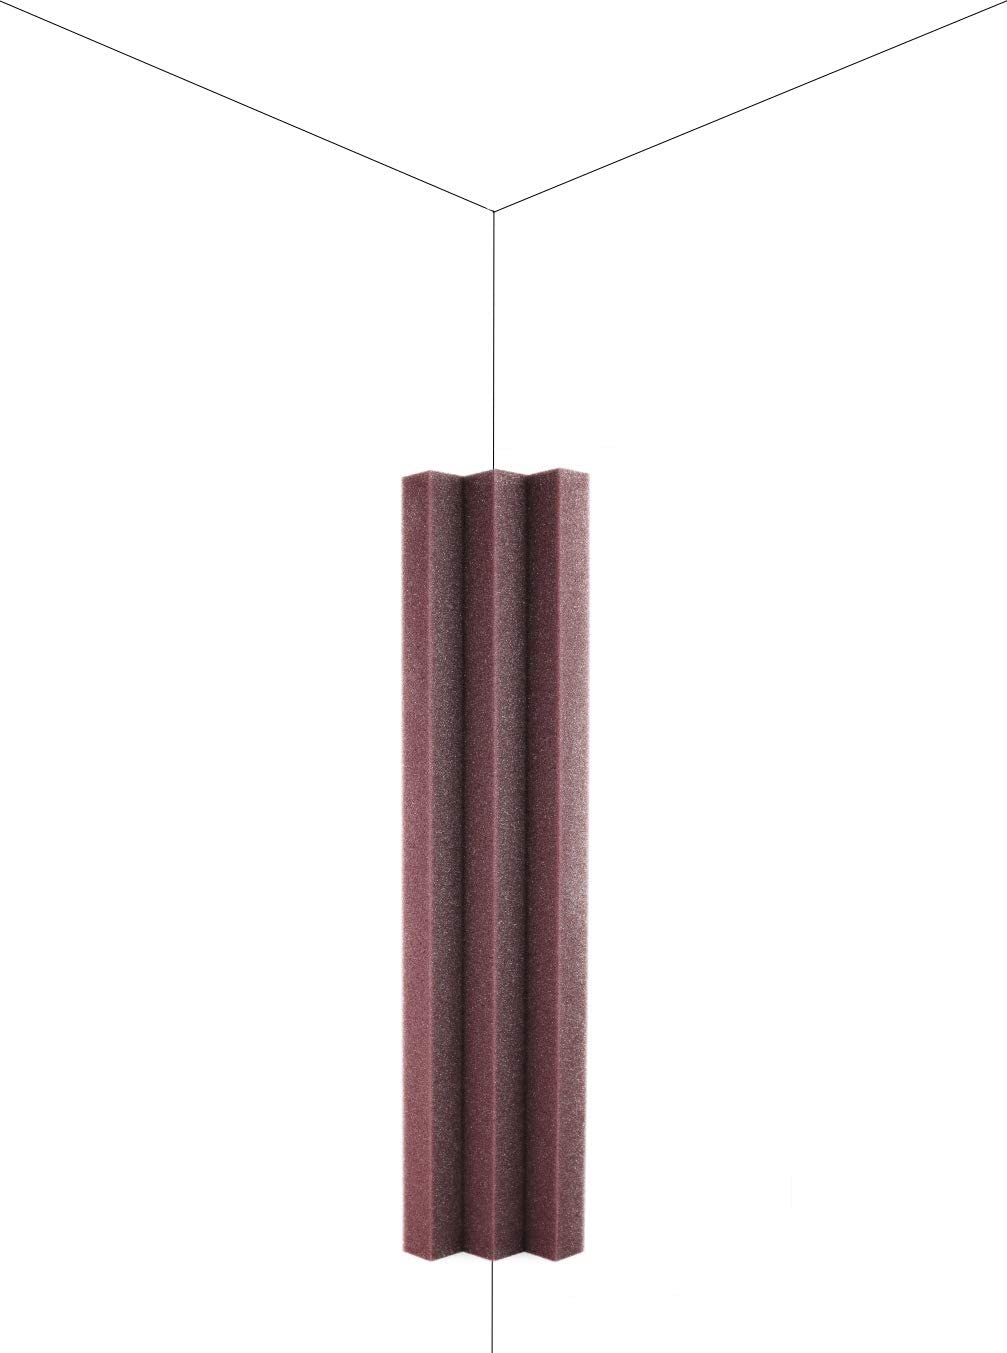 New Level Burgundy Column Acoustic Wedge Studio Foam Corner Block Finish Corner Wall in Studios or Home Theater (8 Pack)